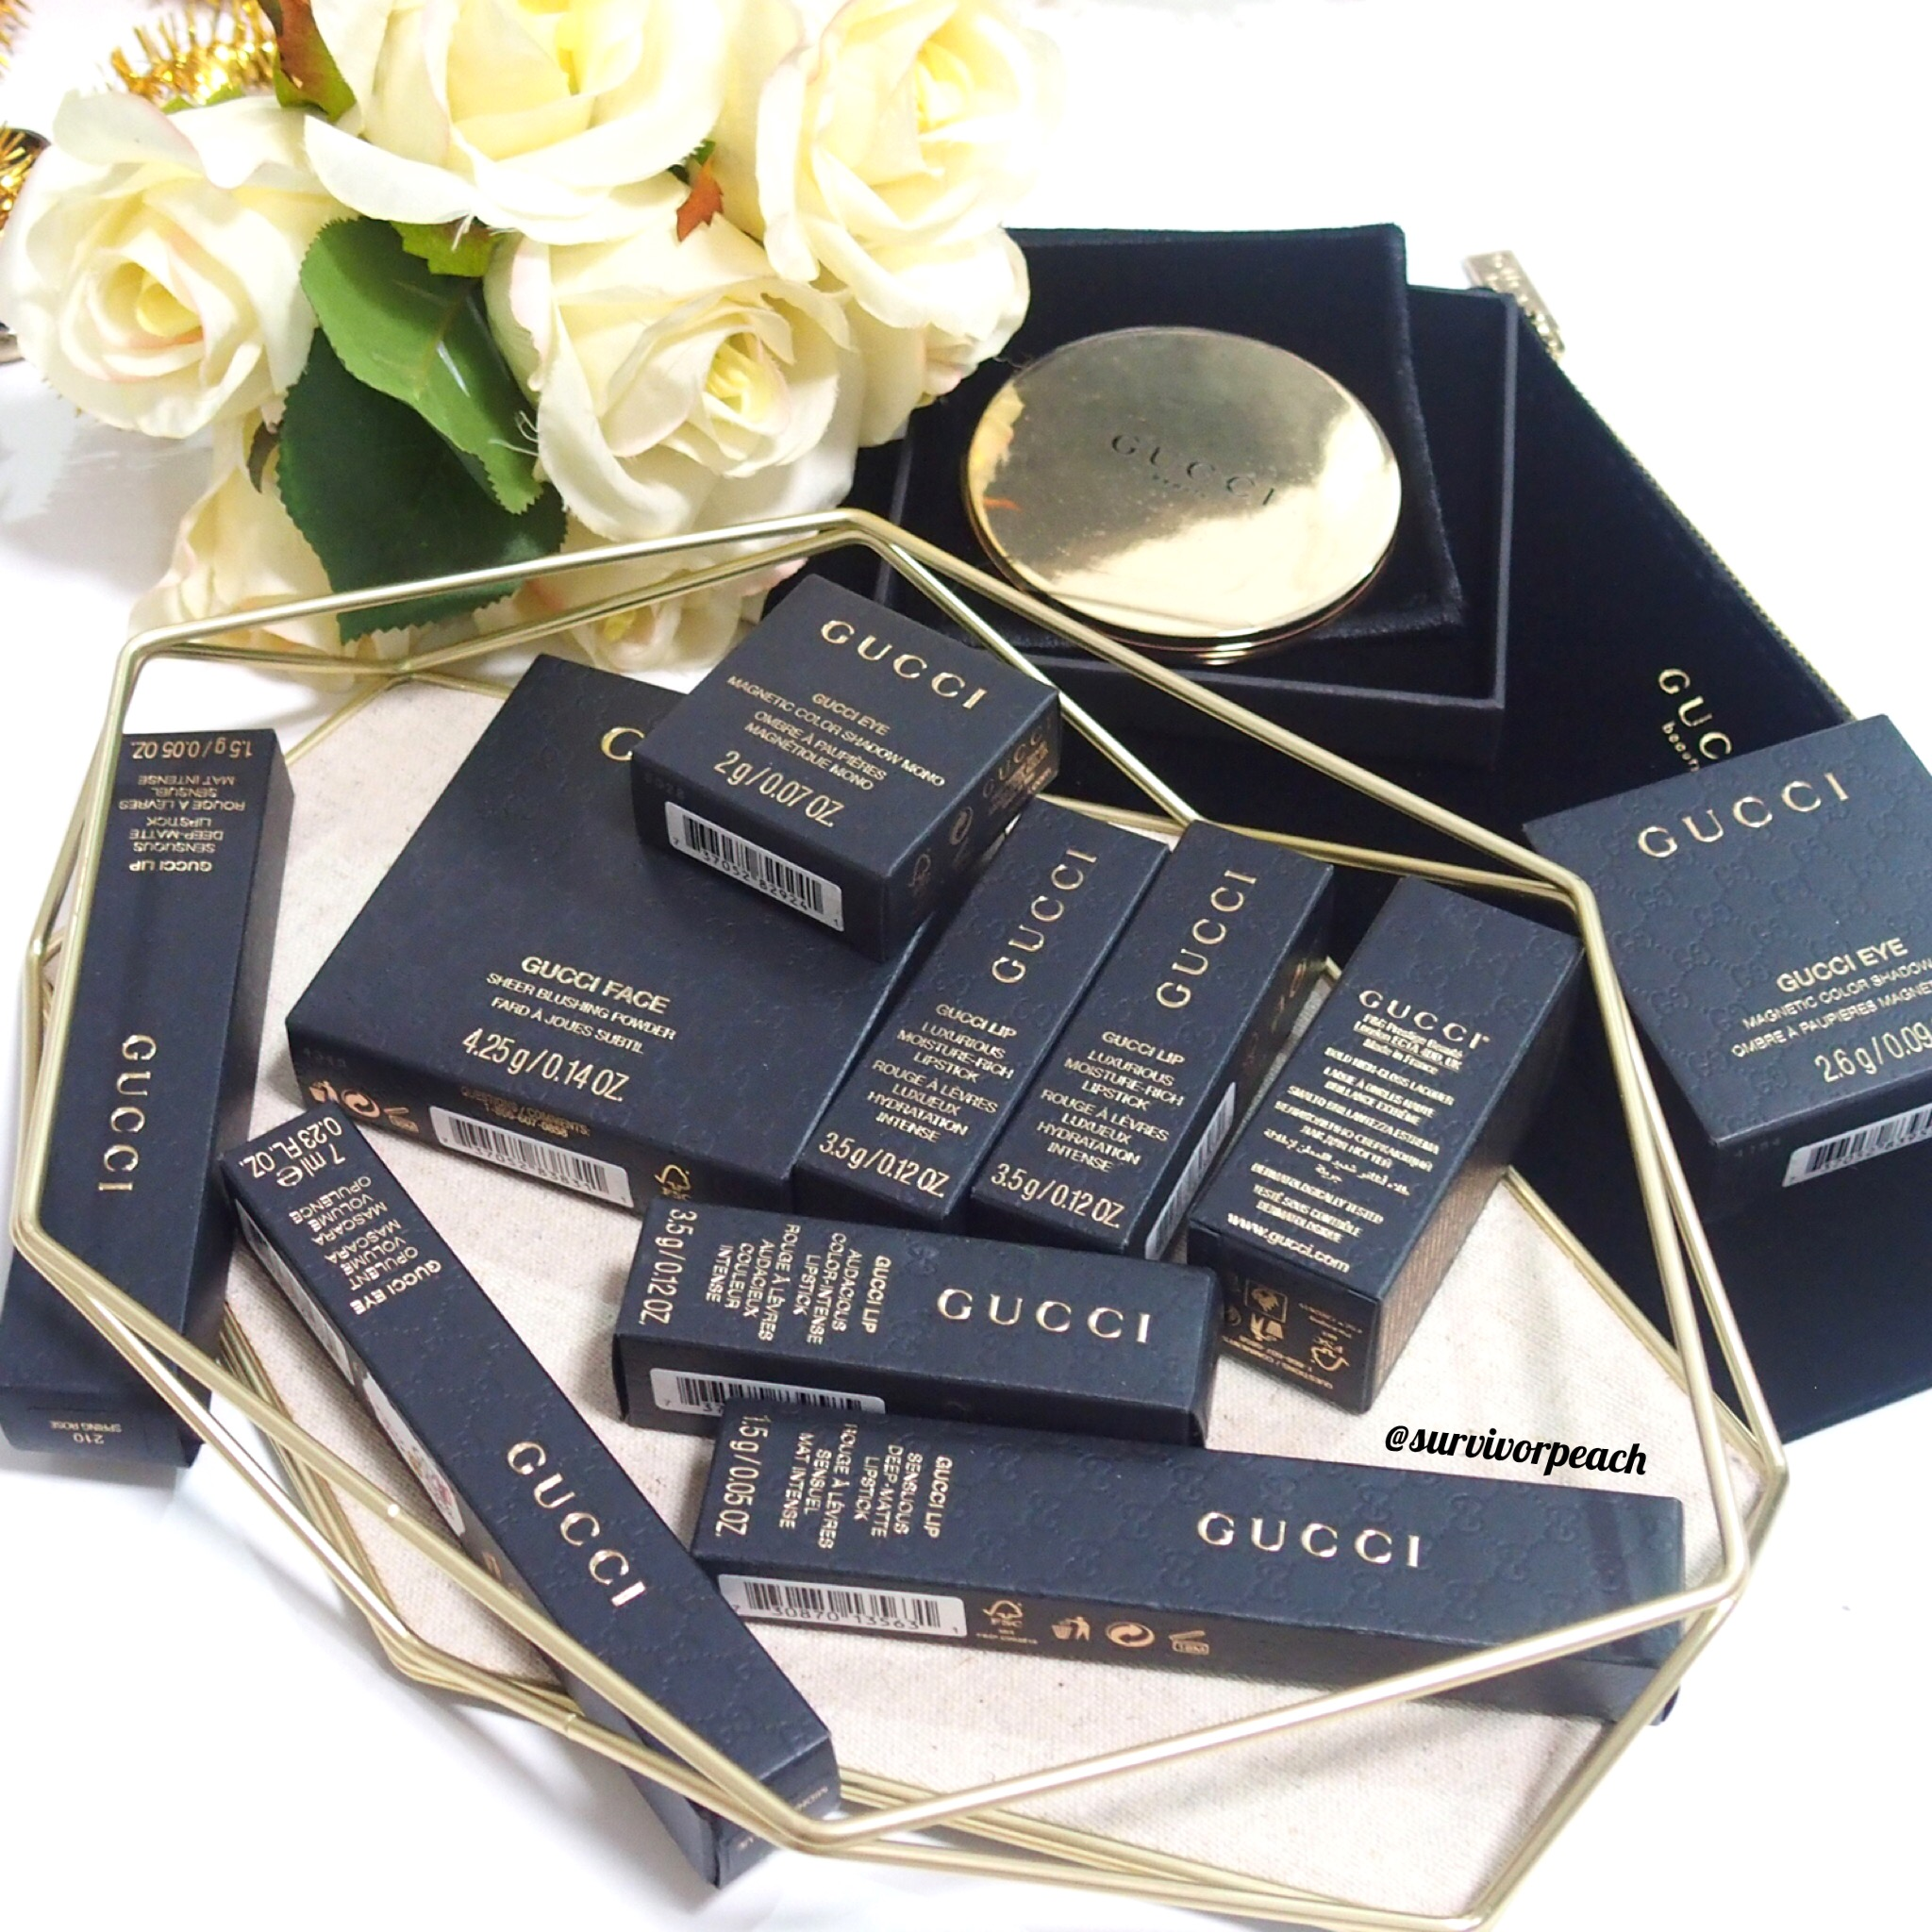 Gucci Beauty packaging